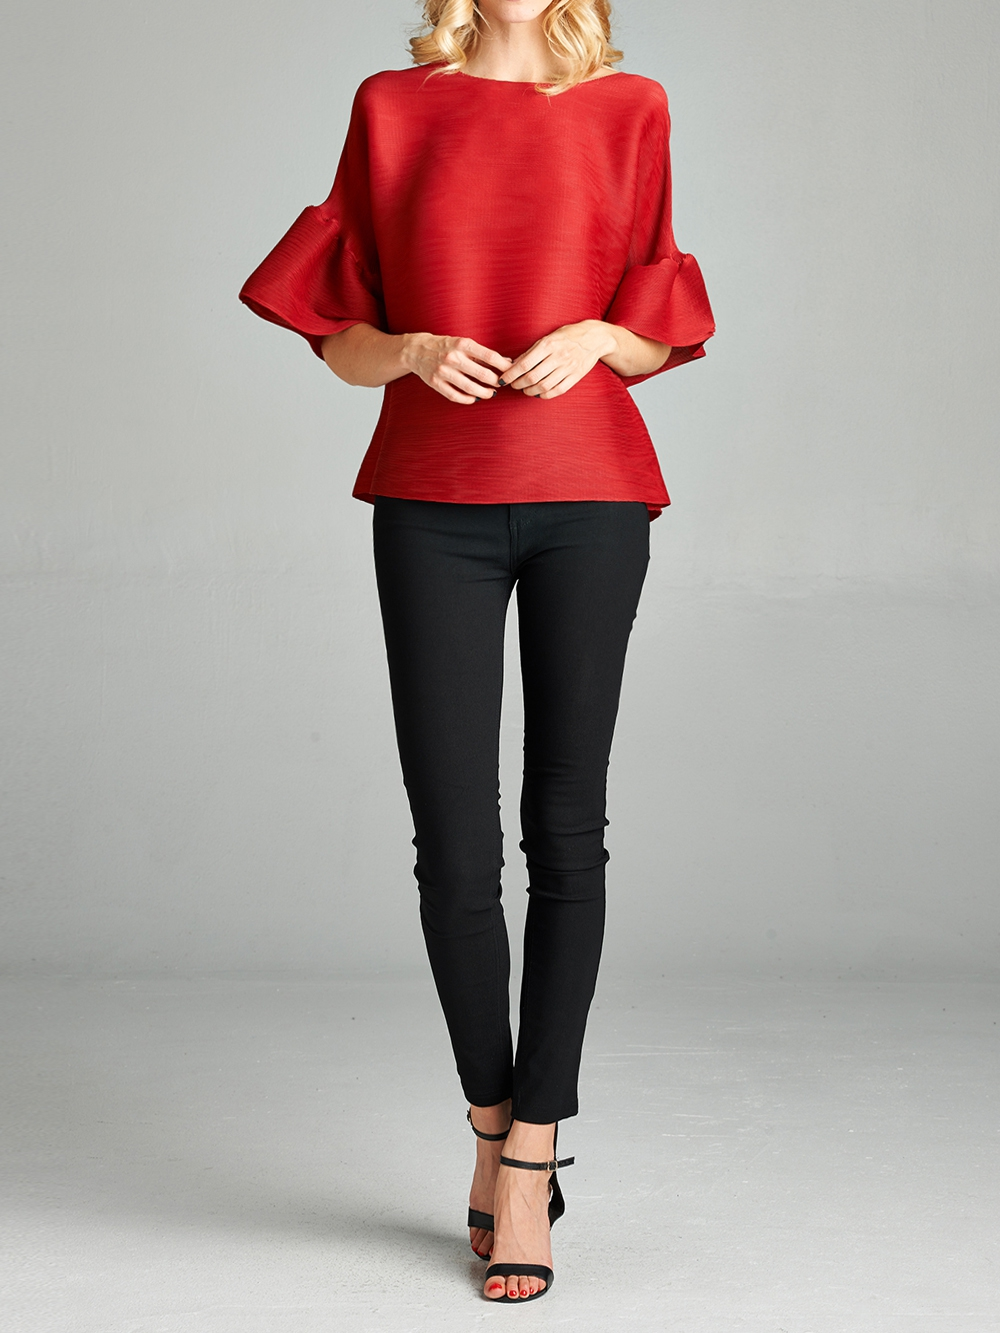 Pleated Red Audrey  Top - orangeshine.com